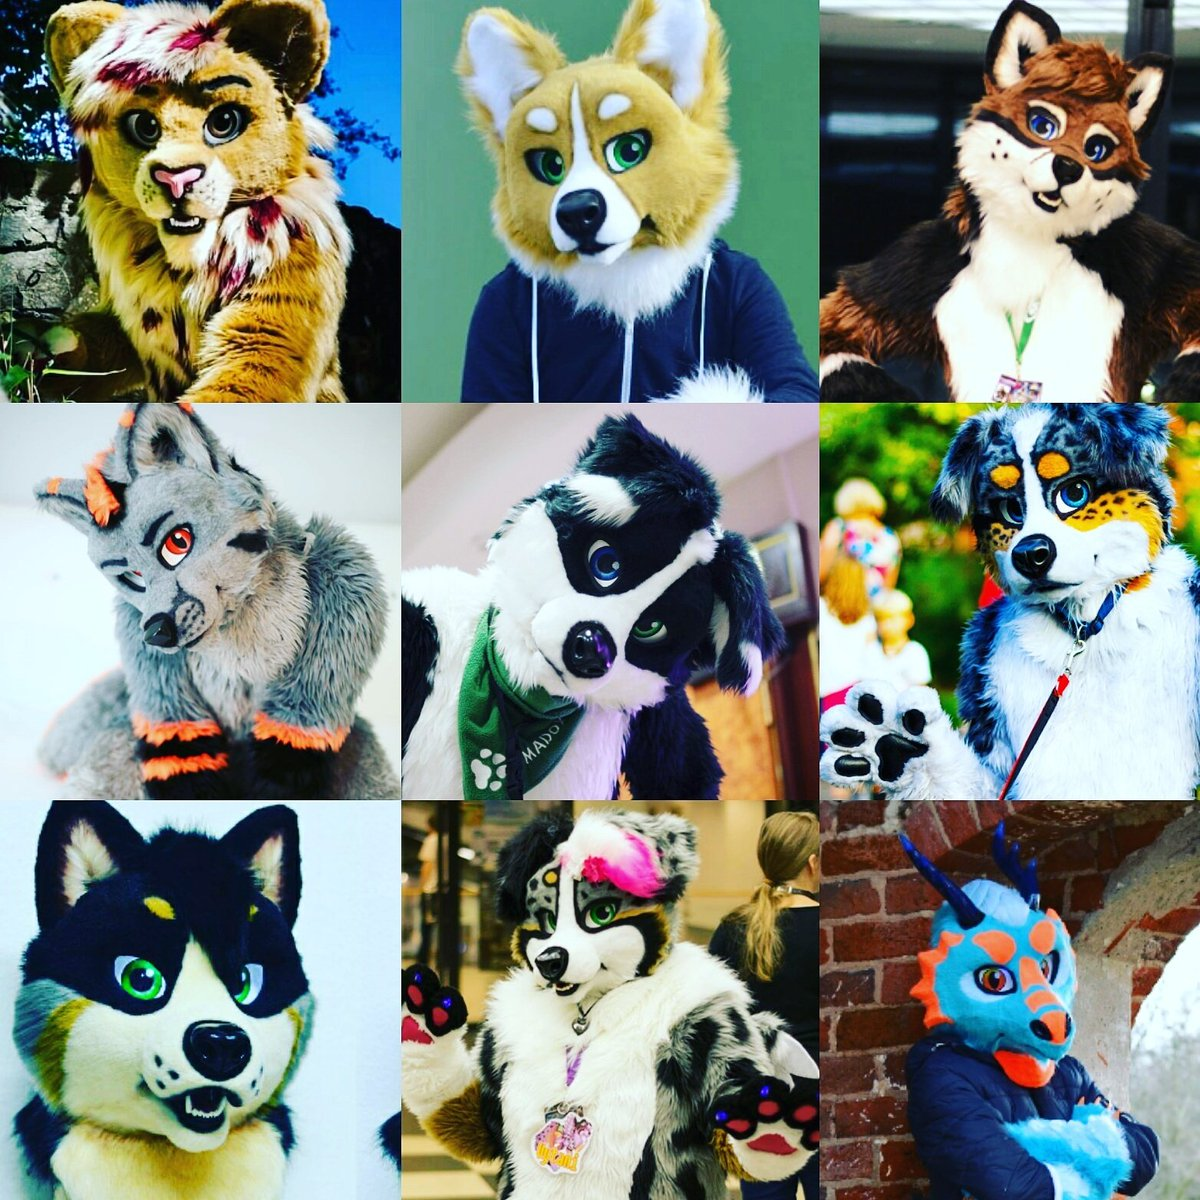 Colage of my latest fursuit builds  #fursuits #furry #fursuit #fursuitheads #movingjaw #lion #Corgie #fox #collie  #shibainu #dragon<br>http://pic.twitter.com/GQqBeGqU9m